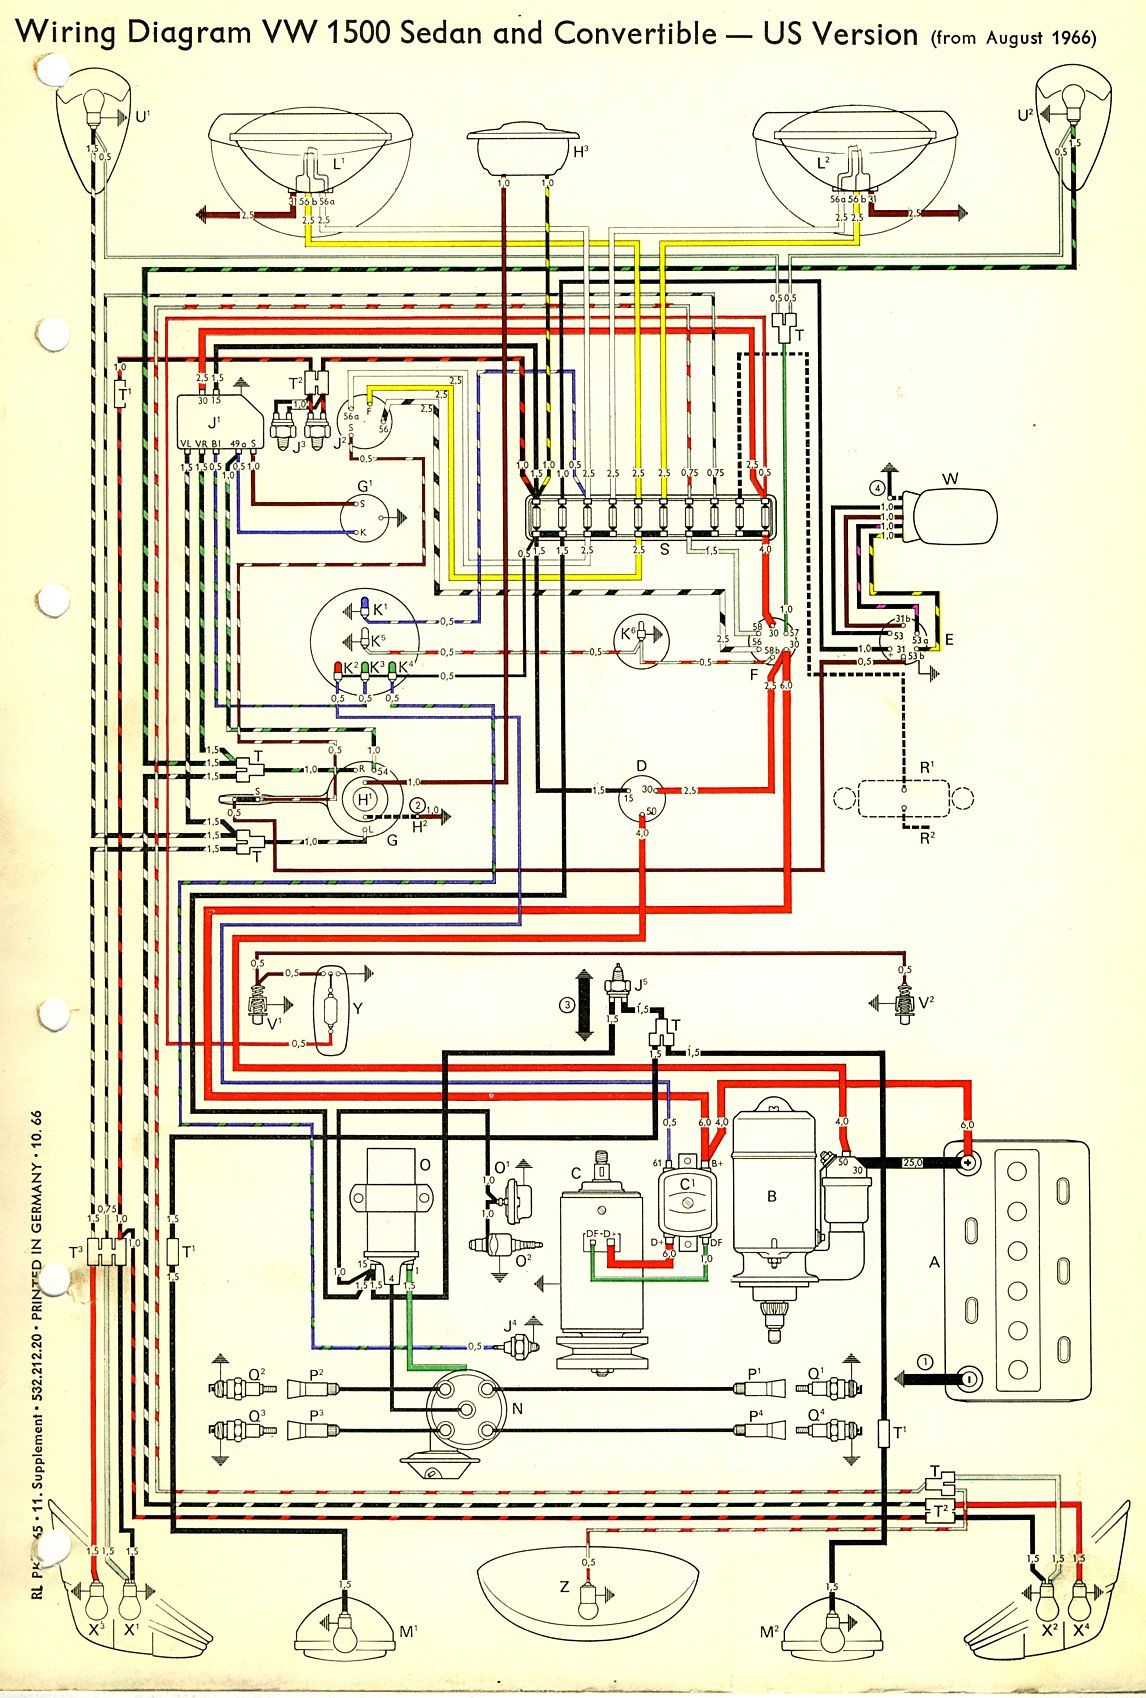 1adf990c0efb617c789fdd21338448b0 1967 beetle wiring diagram (usa) thegoldenbug com best 1967 vw 1969 beetle wiring diagram at sewacar.co